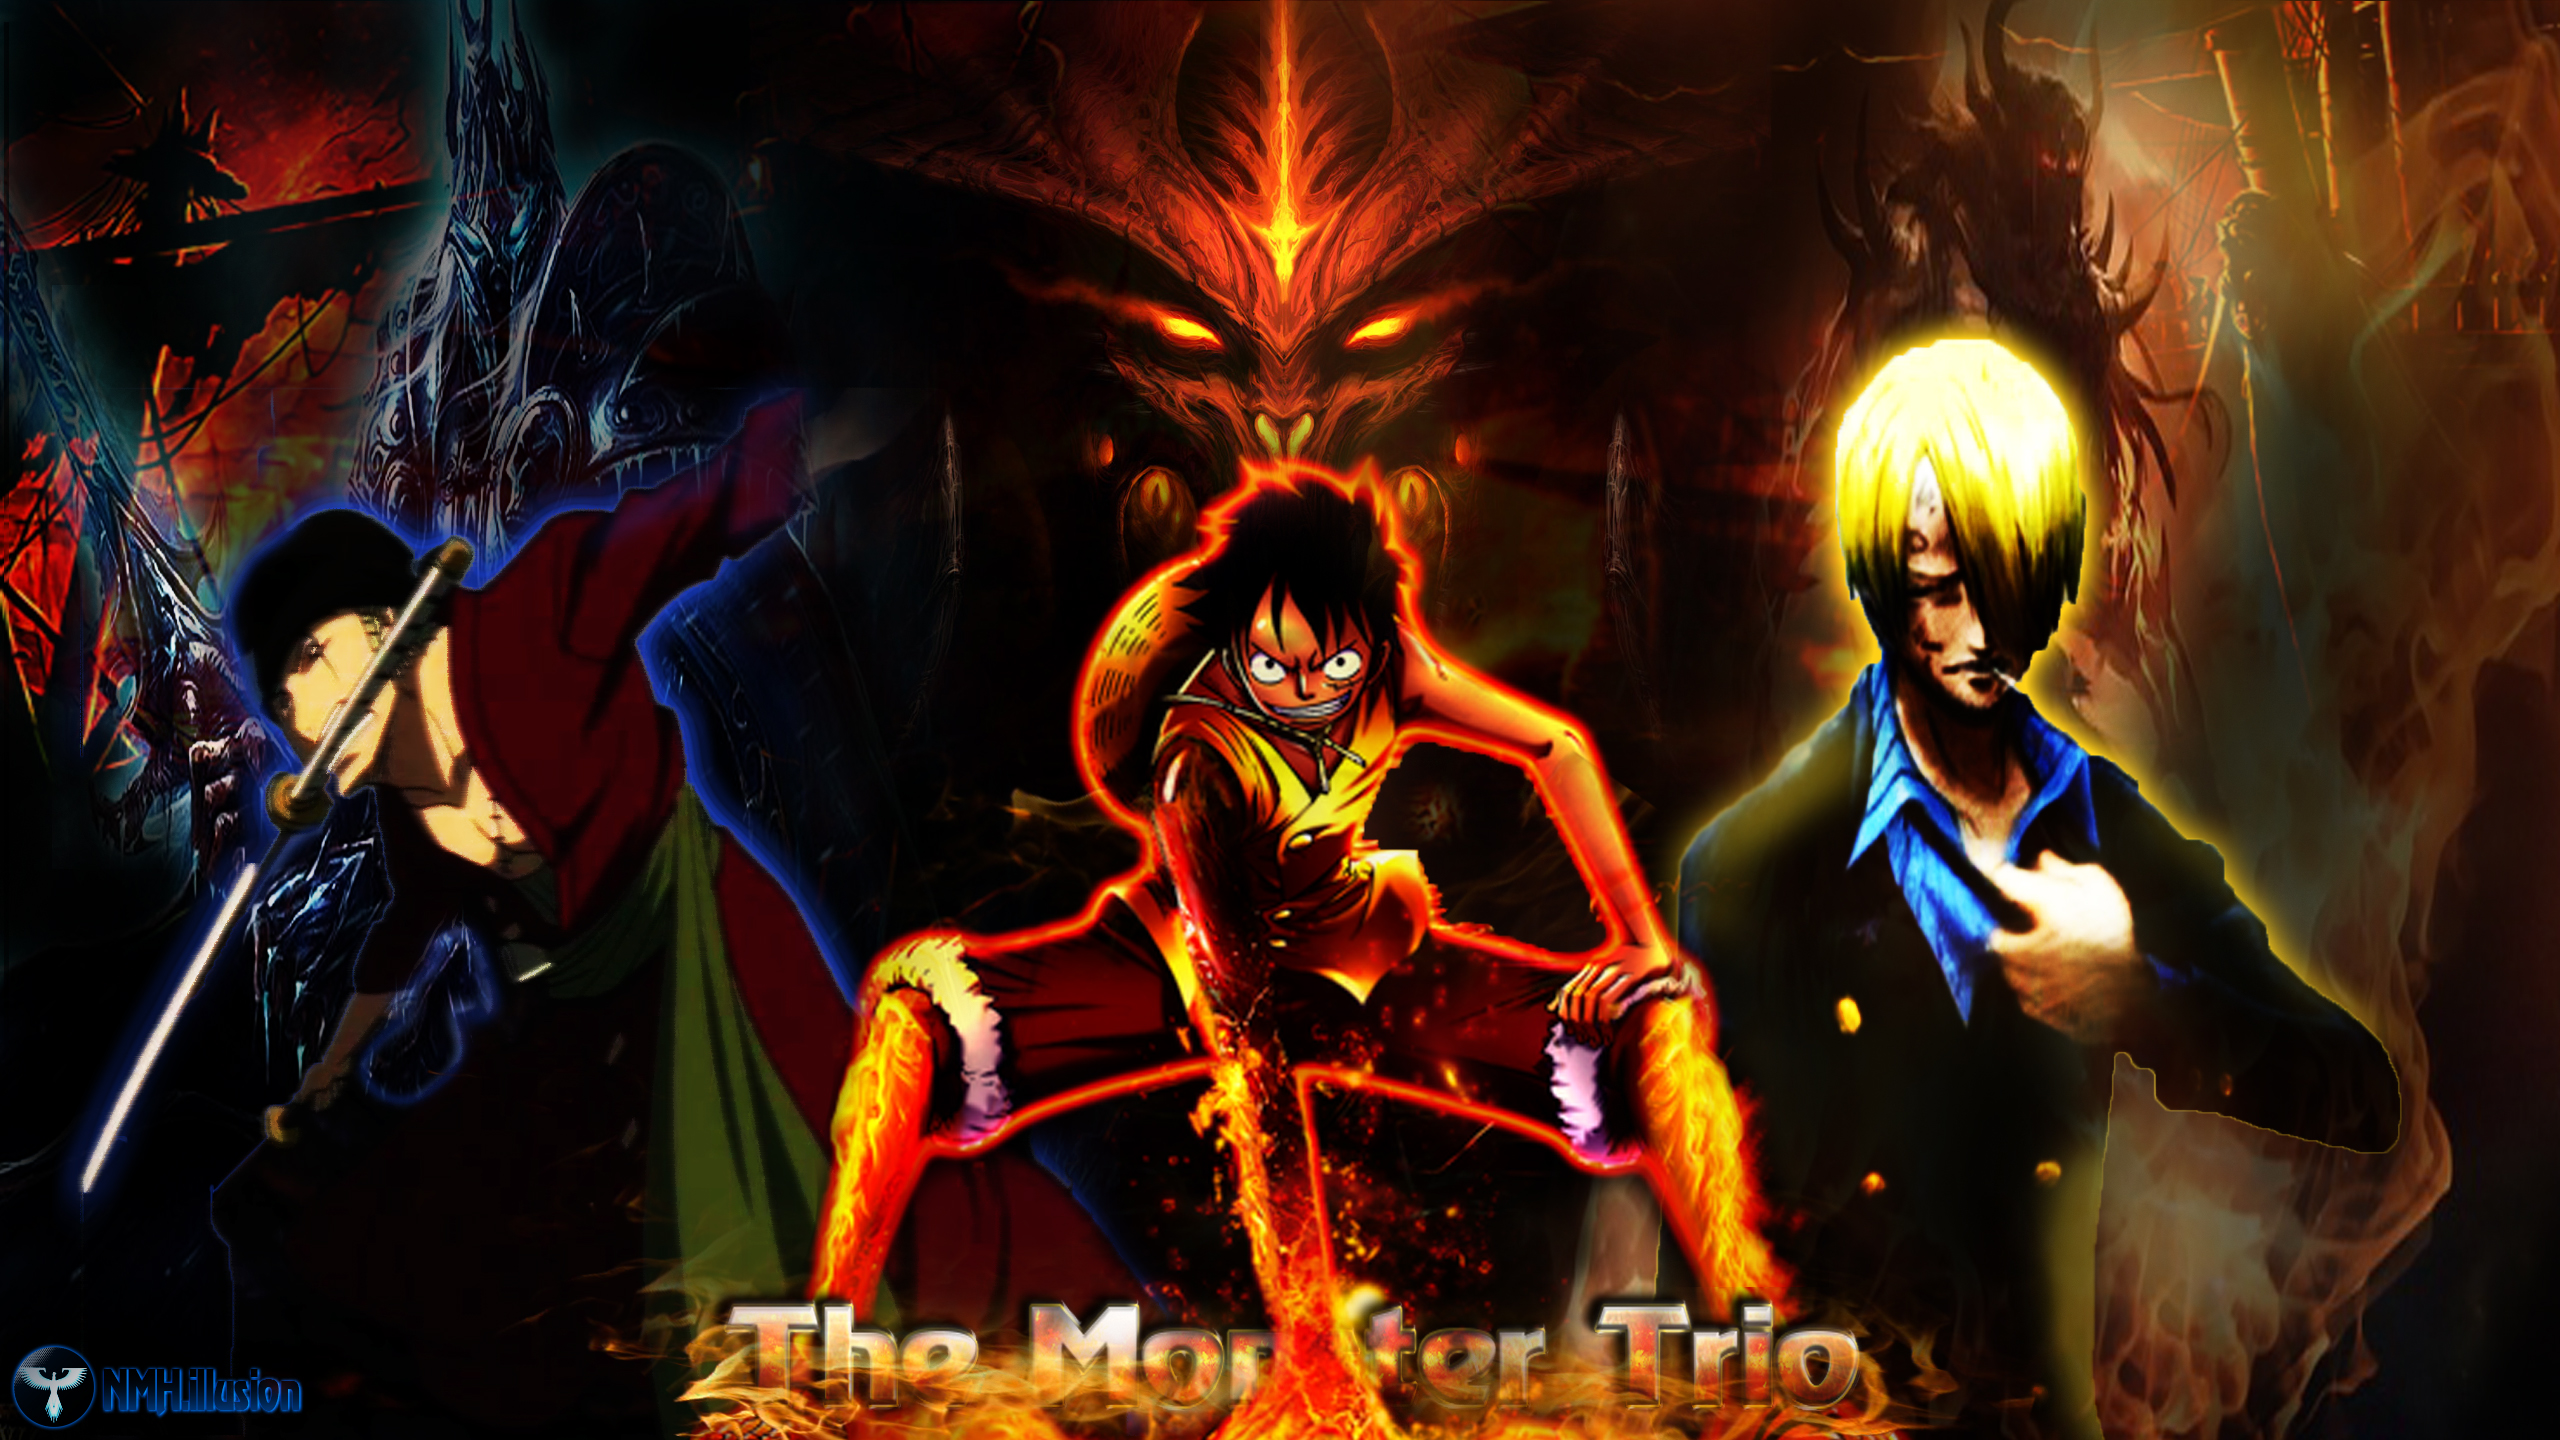 One Piece Straw Hat Luffy Zoro Sanji The Monster by nmh illusion on 2560x1440